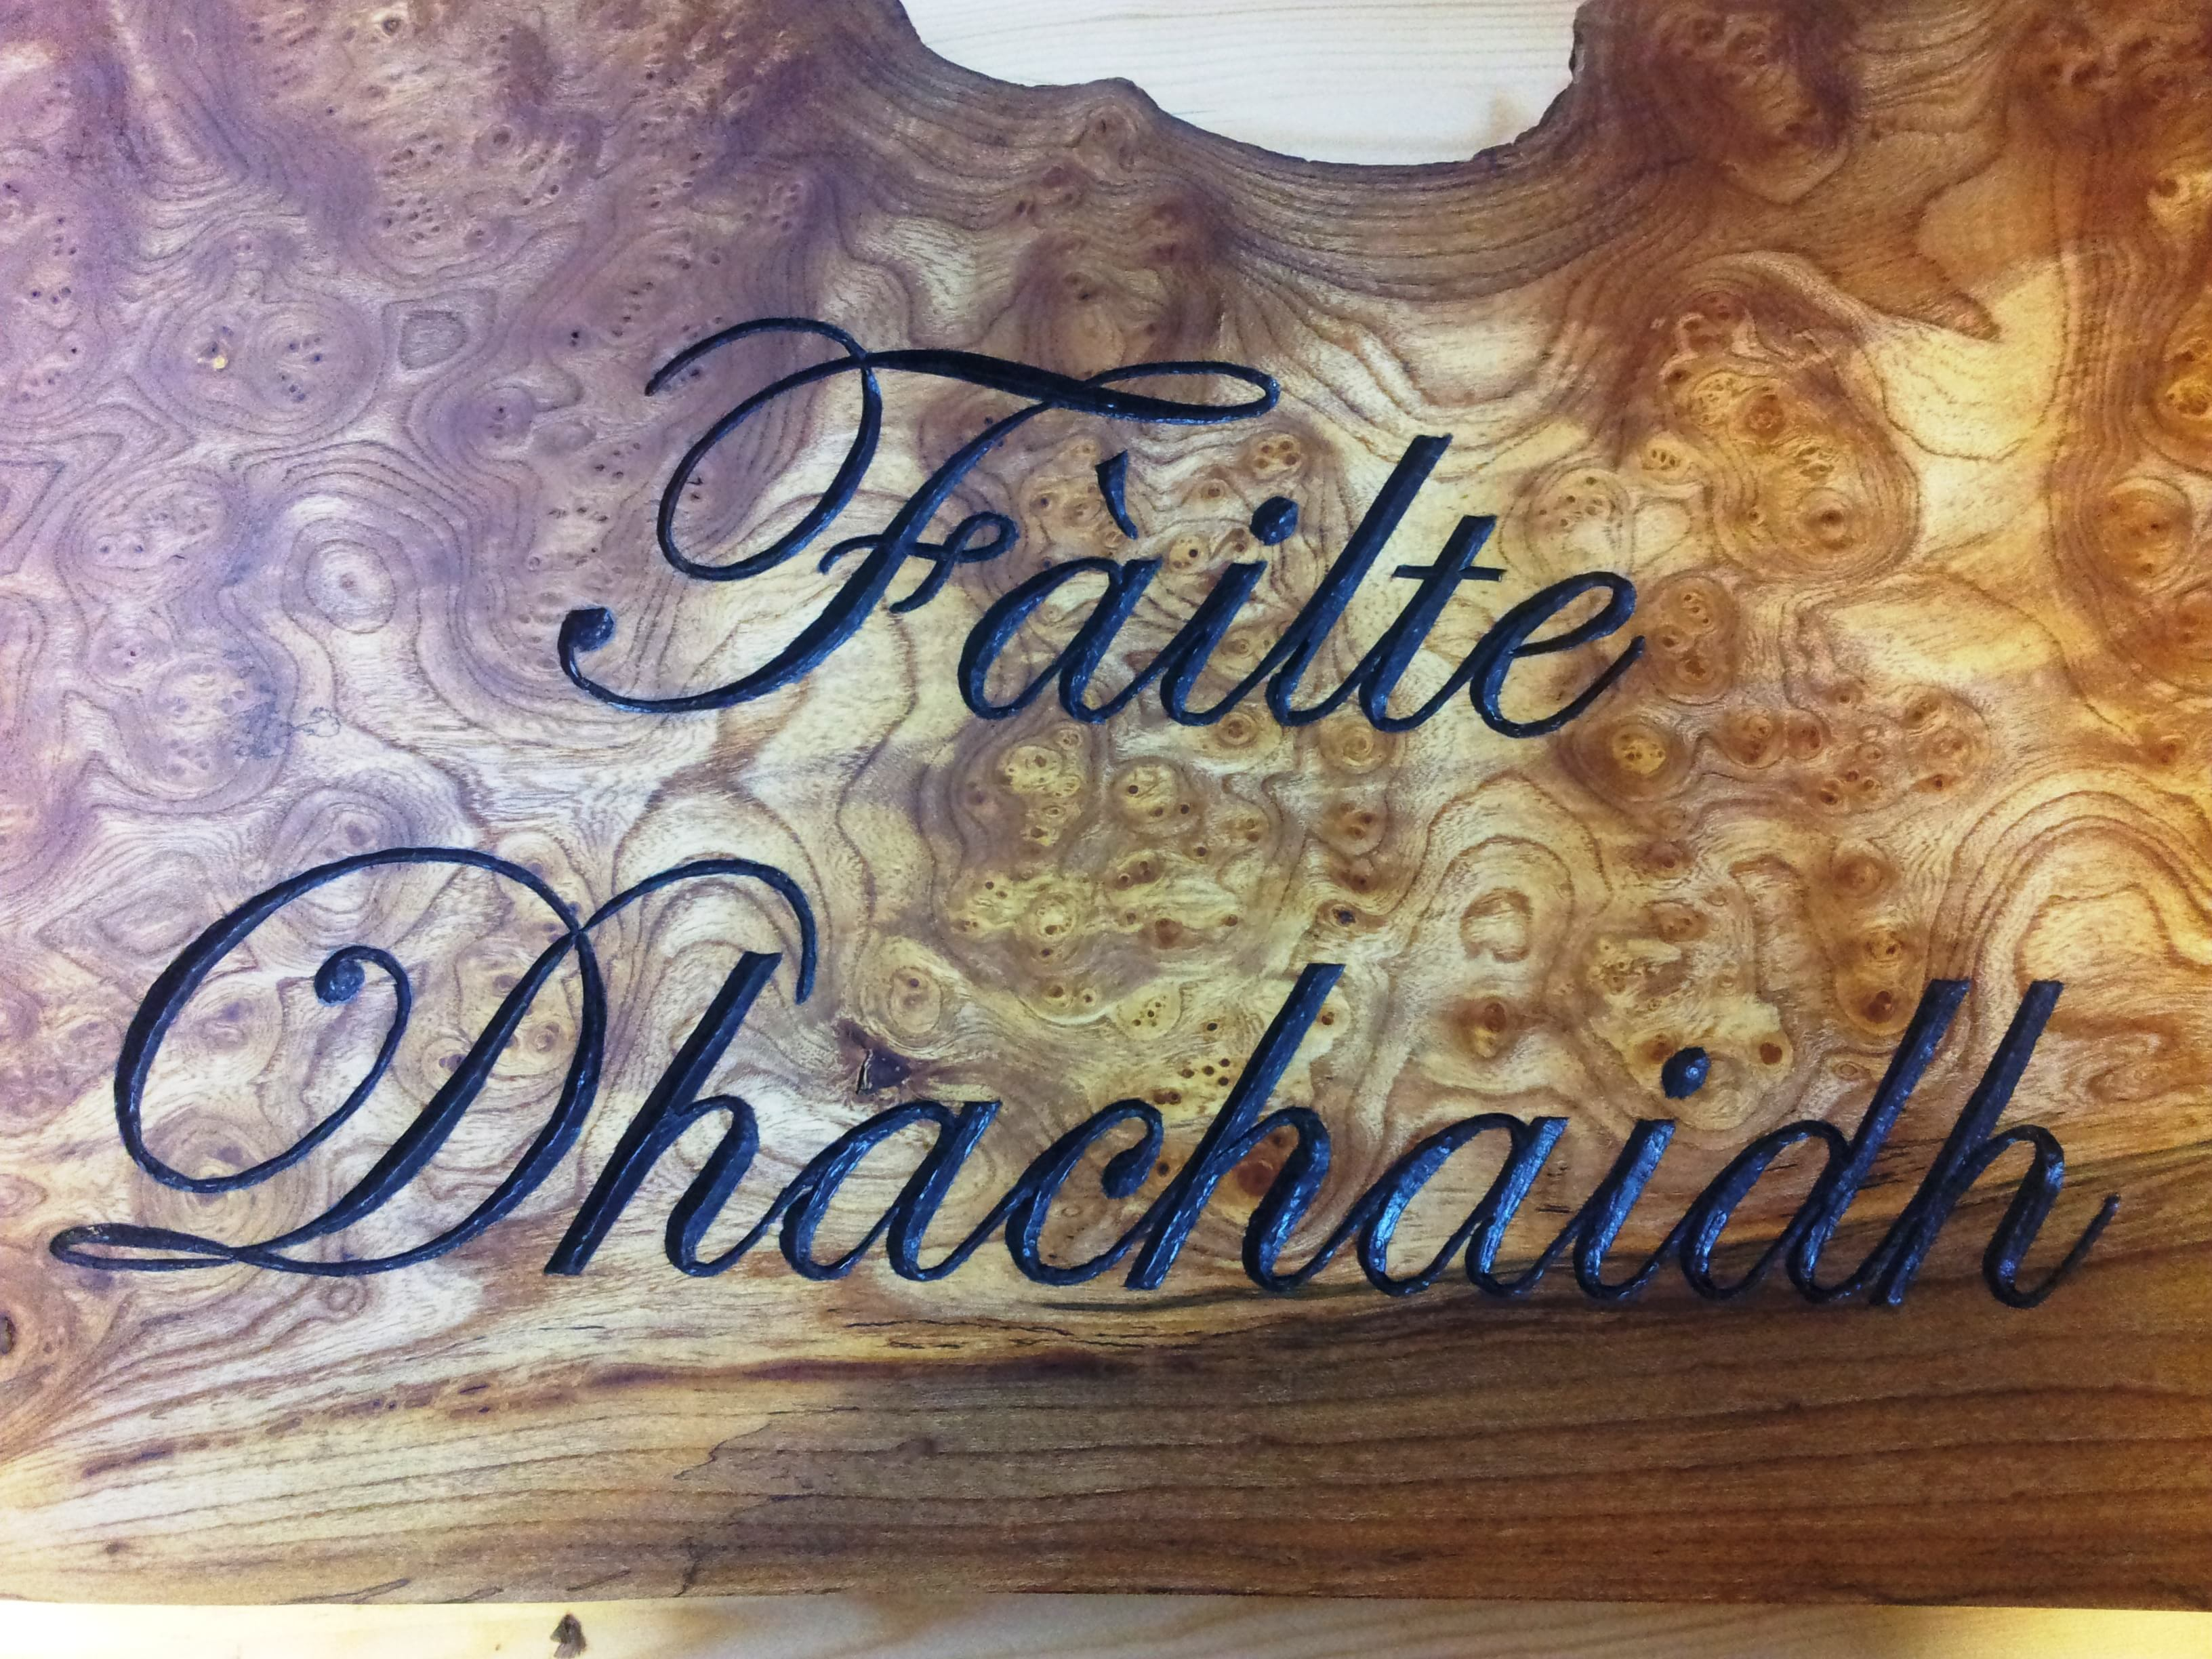 Gaelic Letter Carving